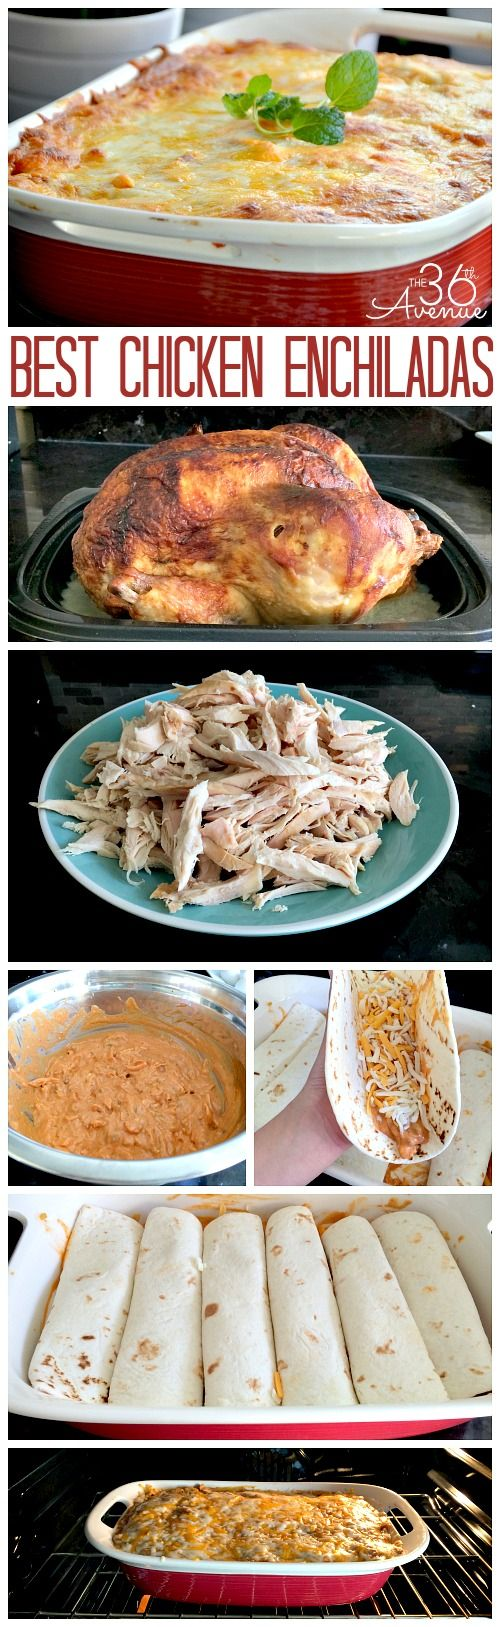 These are the easiest and delicious chicken enchiladas EVER! Get a roasted chicken at the store a few more ingredients and dinner is ready to go! #recipes #chicken